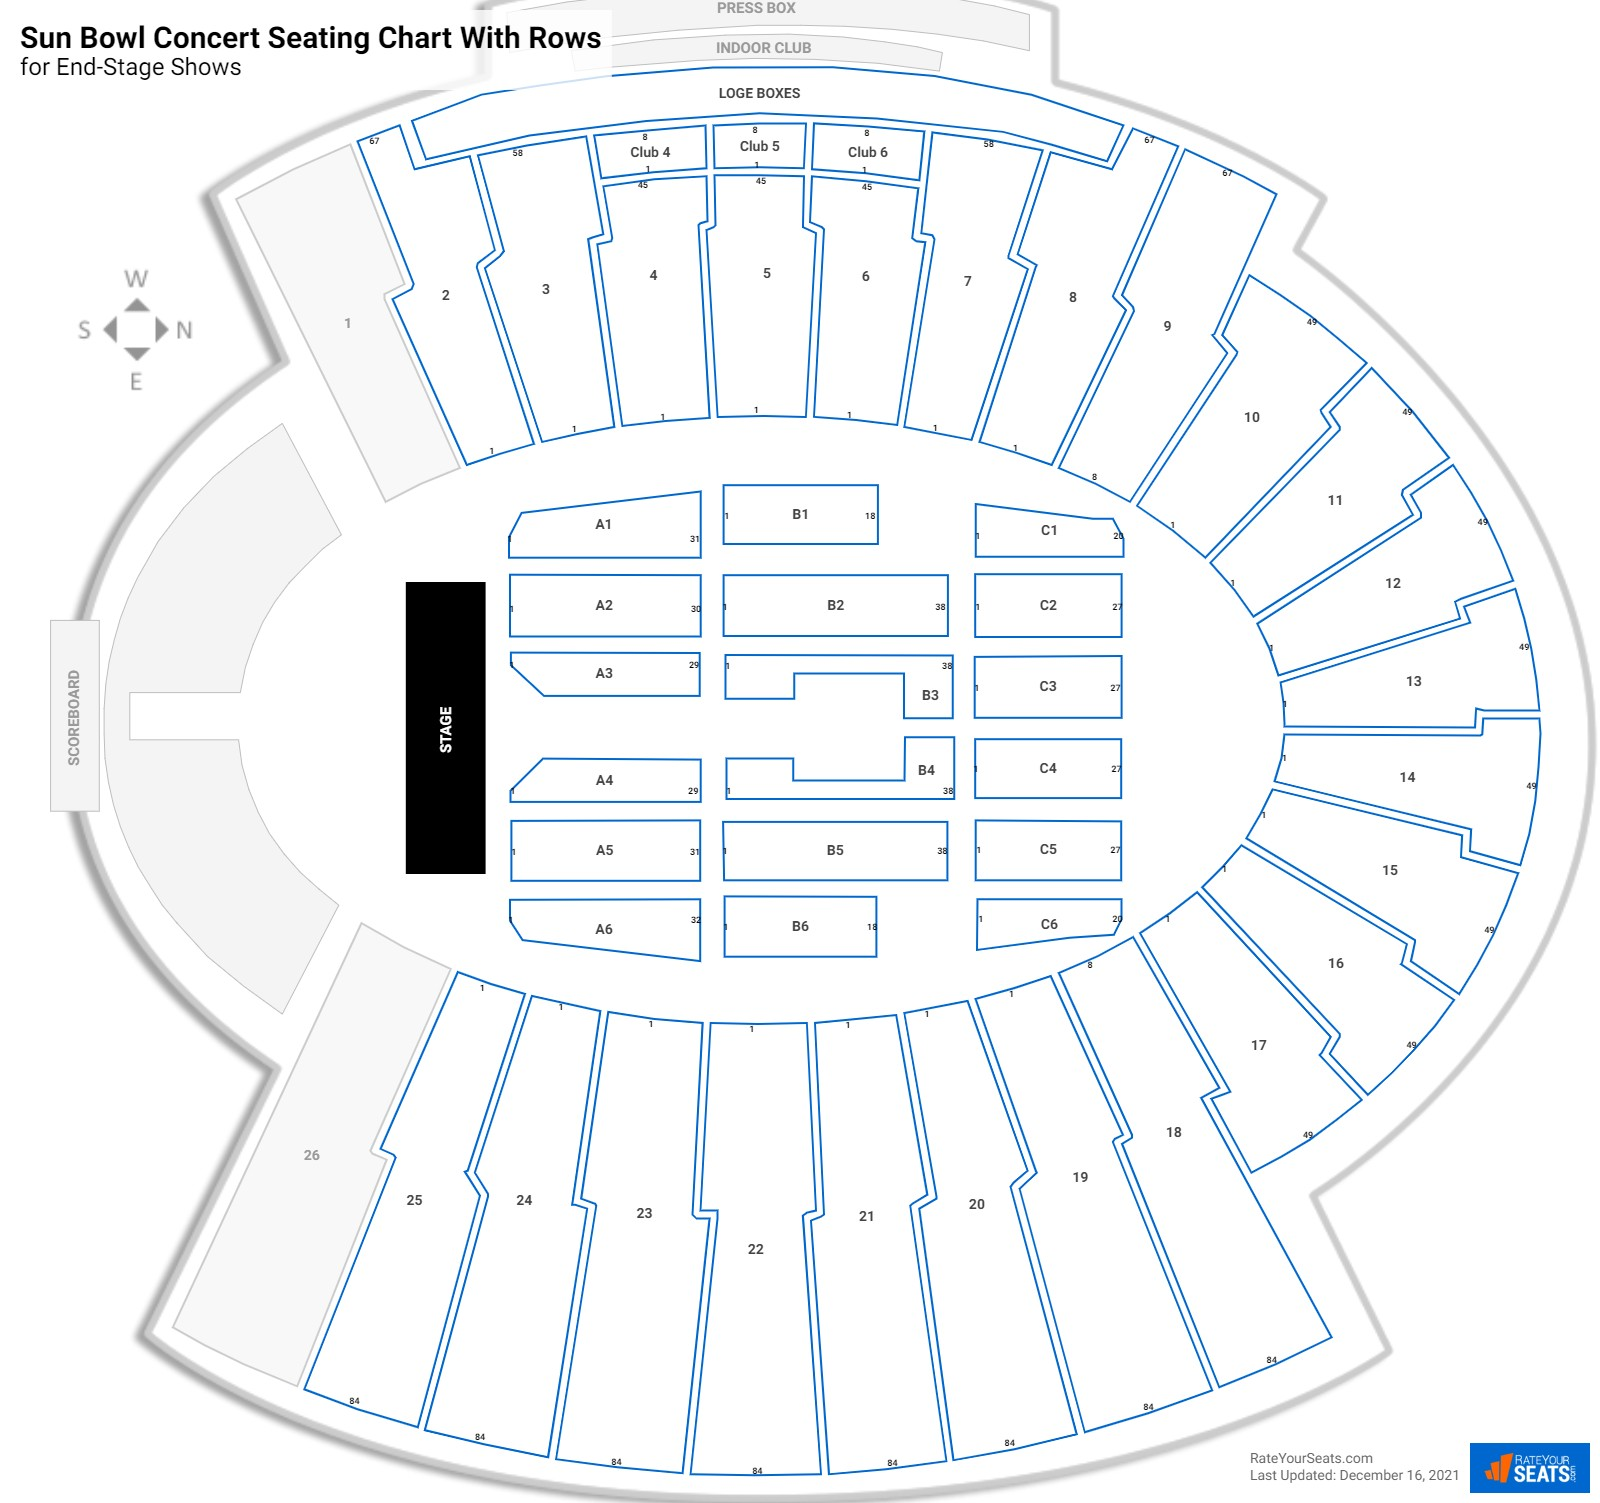 Sun Bowl seating chart with rows concert